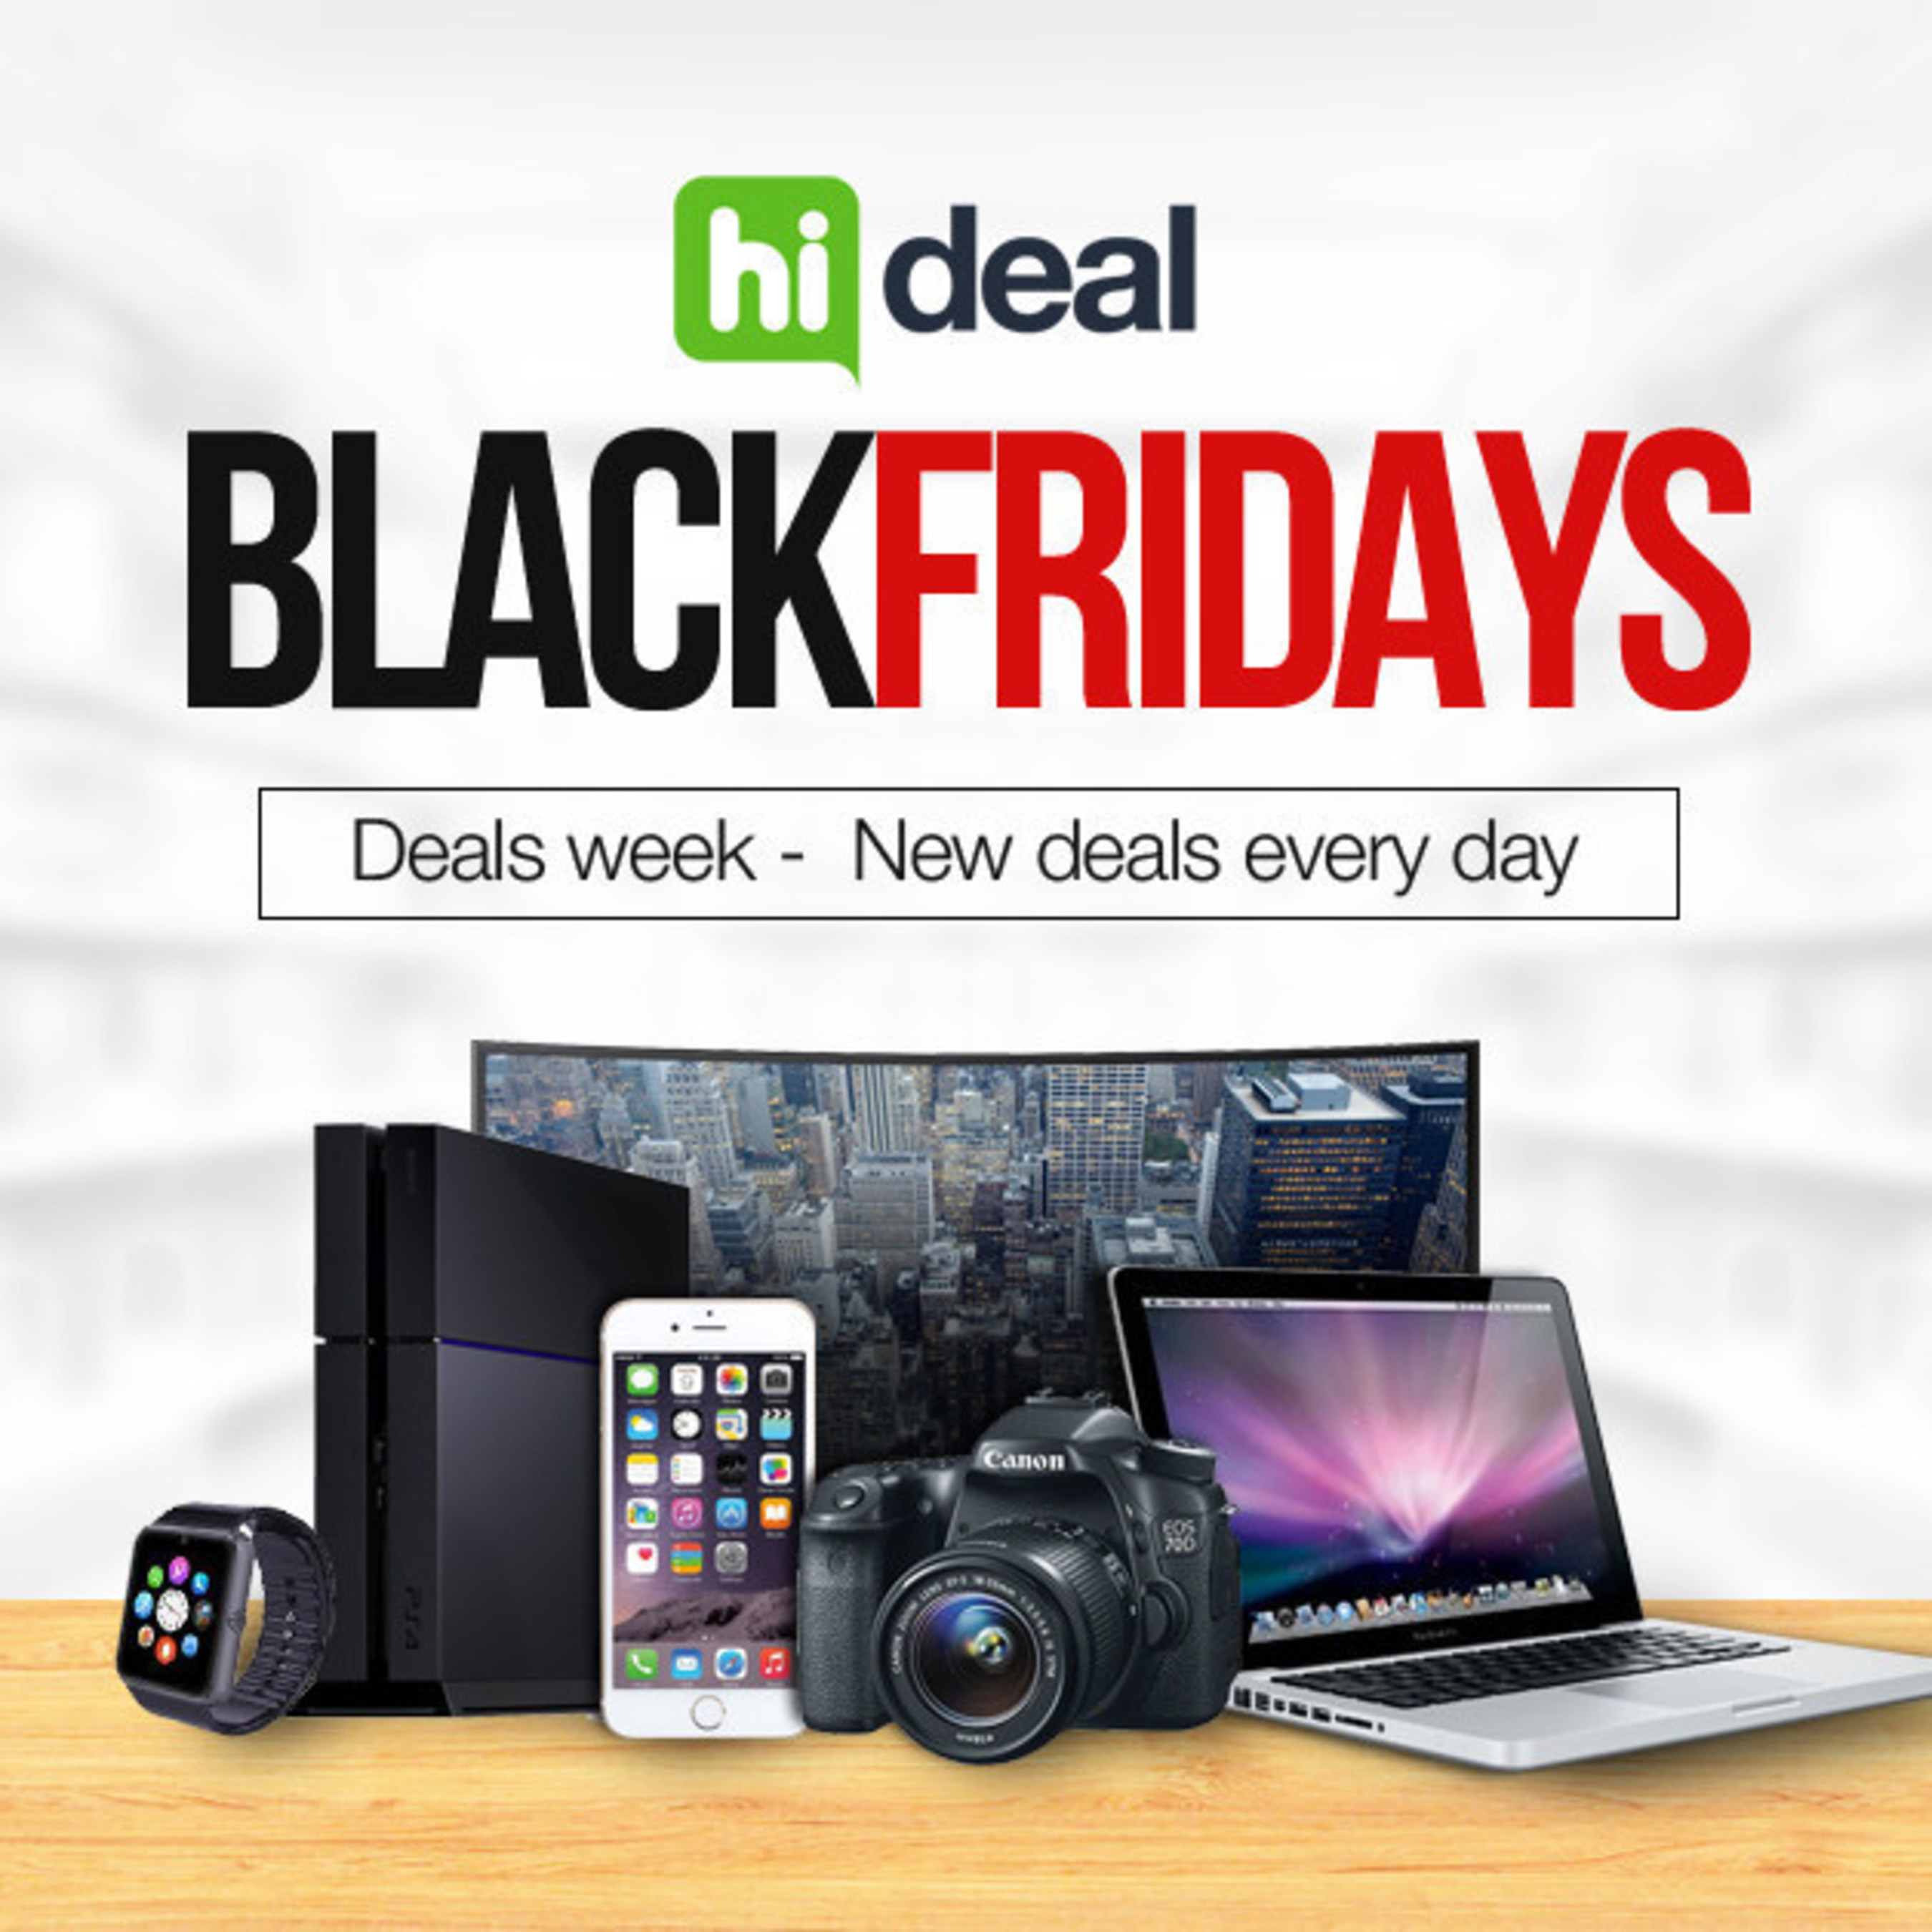 Top 5 Secrets on Black Friday 2015 Shoppers Must Know